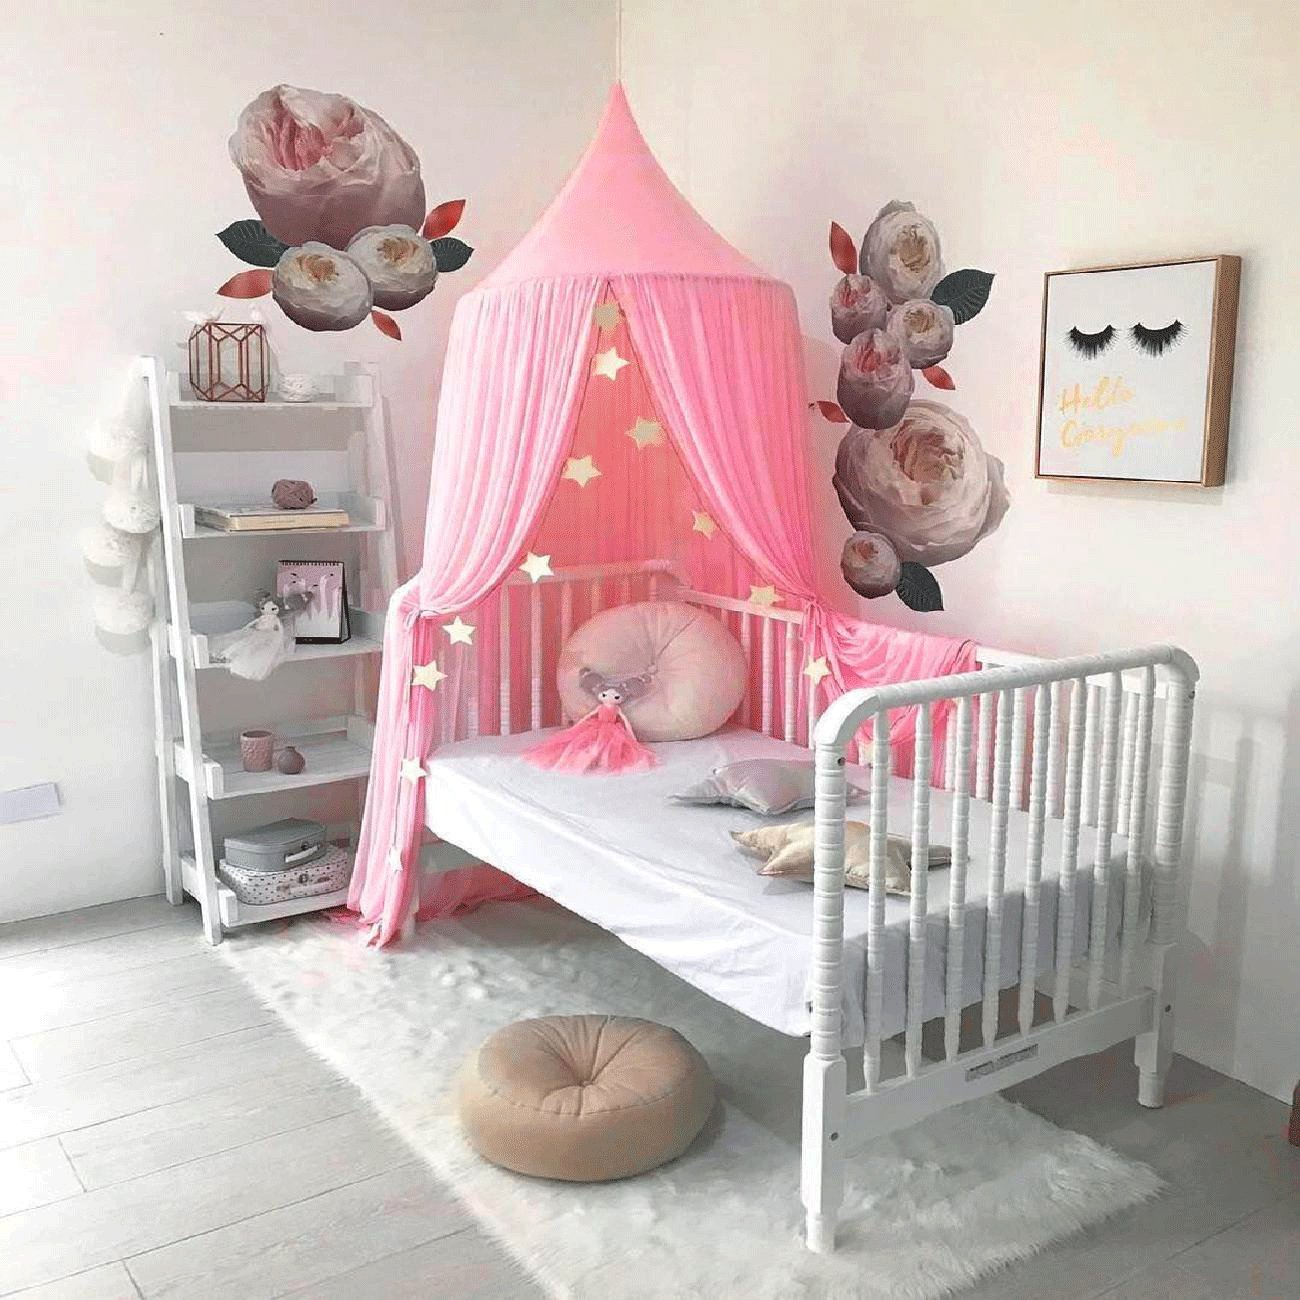 TOPAUP Bed Canopy Princess Baby Kid Cribs Mosquito Net Cotton Round Dome Castle Play Tent Reading Nook Decoration Indoor Game Room Pink